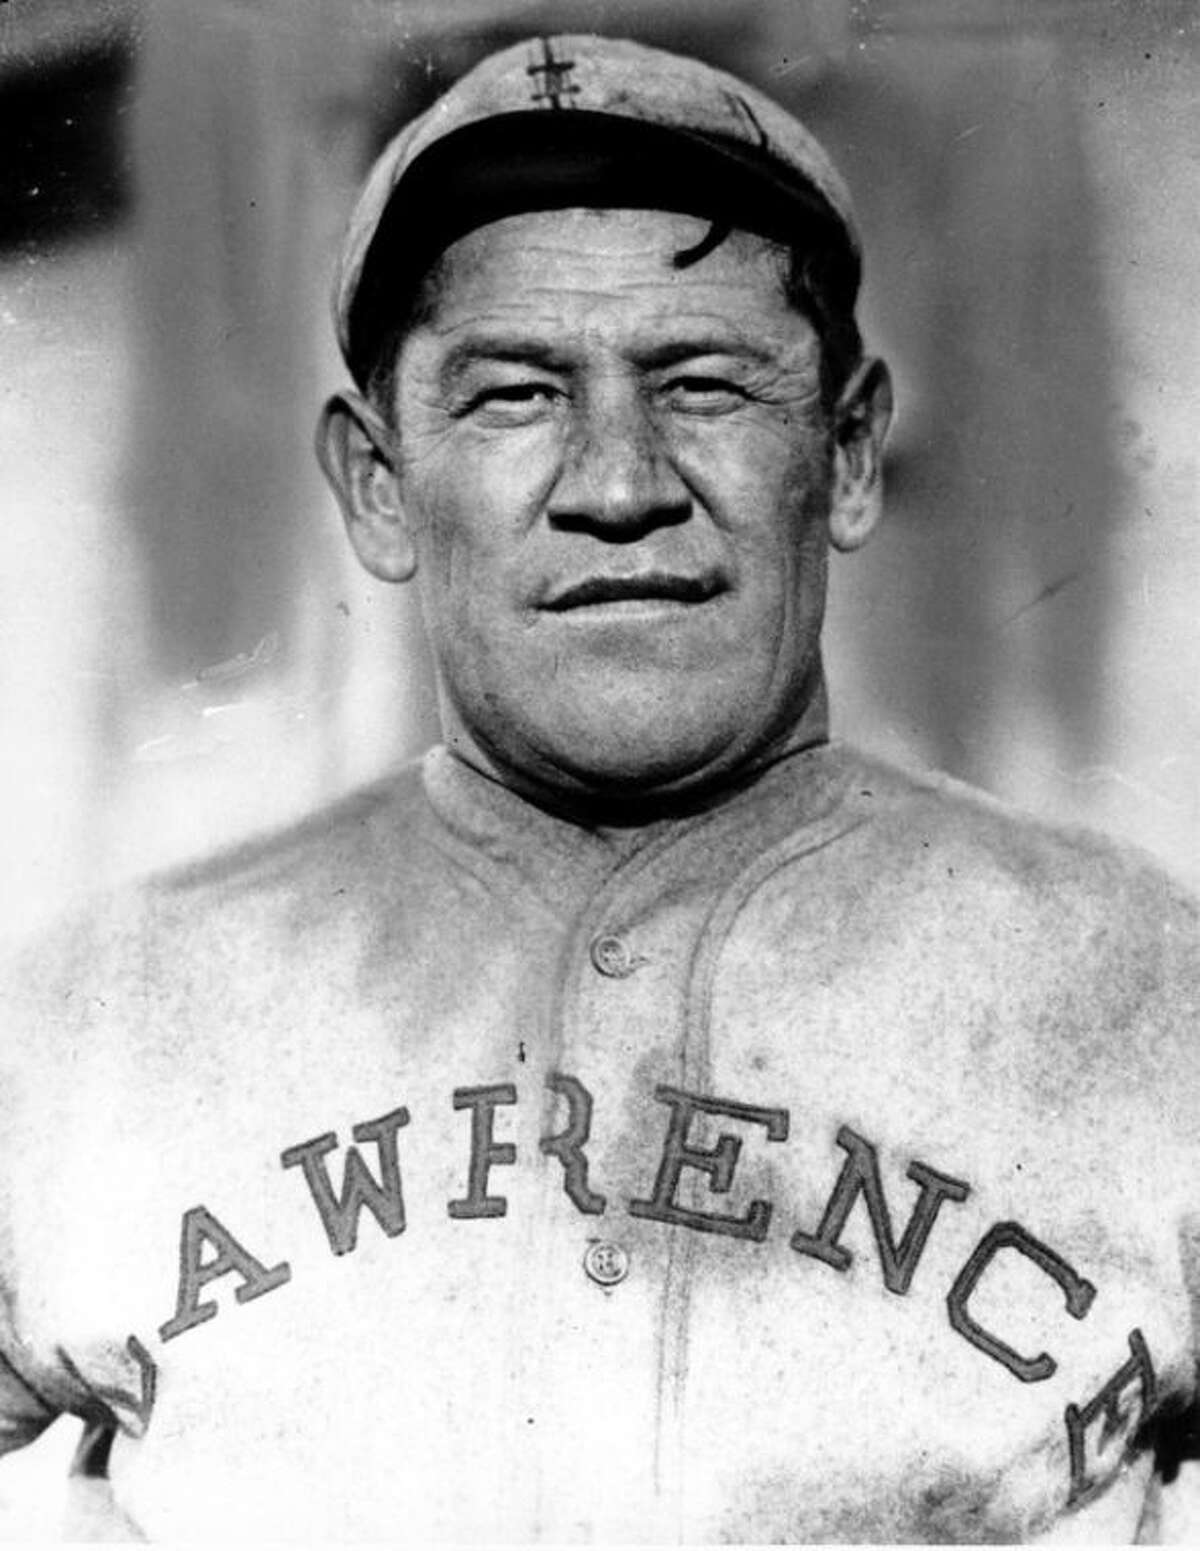 FILE - In this undated file photo, Jim Thorpe poses in a baseball uniform. The two surviving children of sports great Thorpe won a critical ruling on Friday, April 19, 2013, in federal court that could clear the way for his remains to be removed from a mausoleum in the Pennsylvania town that bears his name and reinterred on American Indian land in Oklahoma. (AP Photo/File)